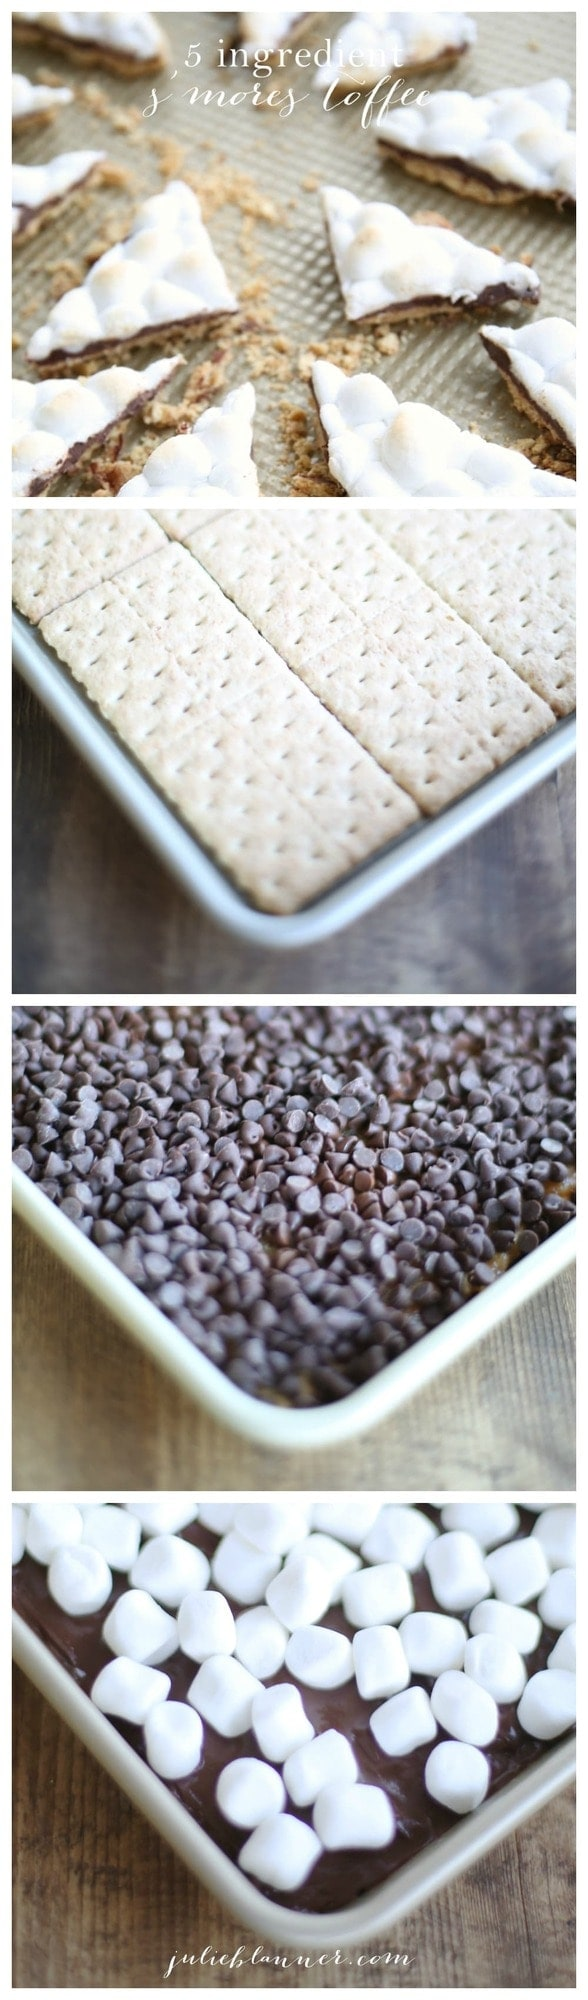 5 ingredient easy S'mores Toffee recipe